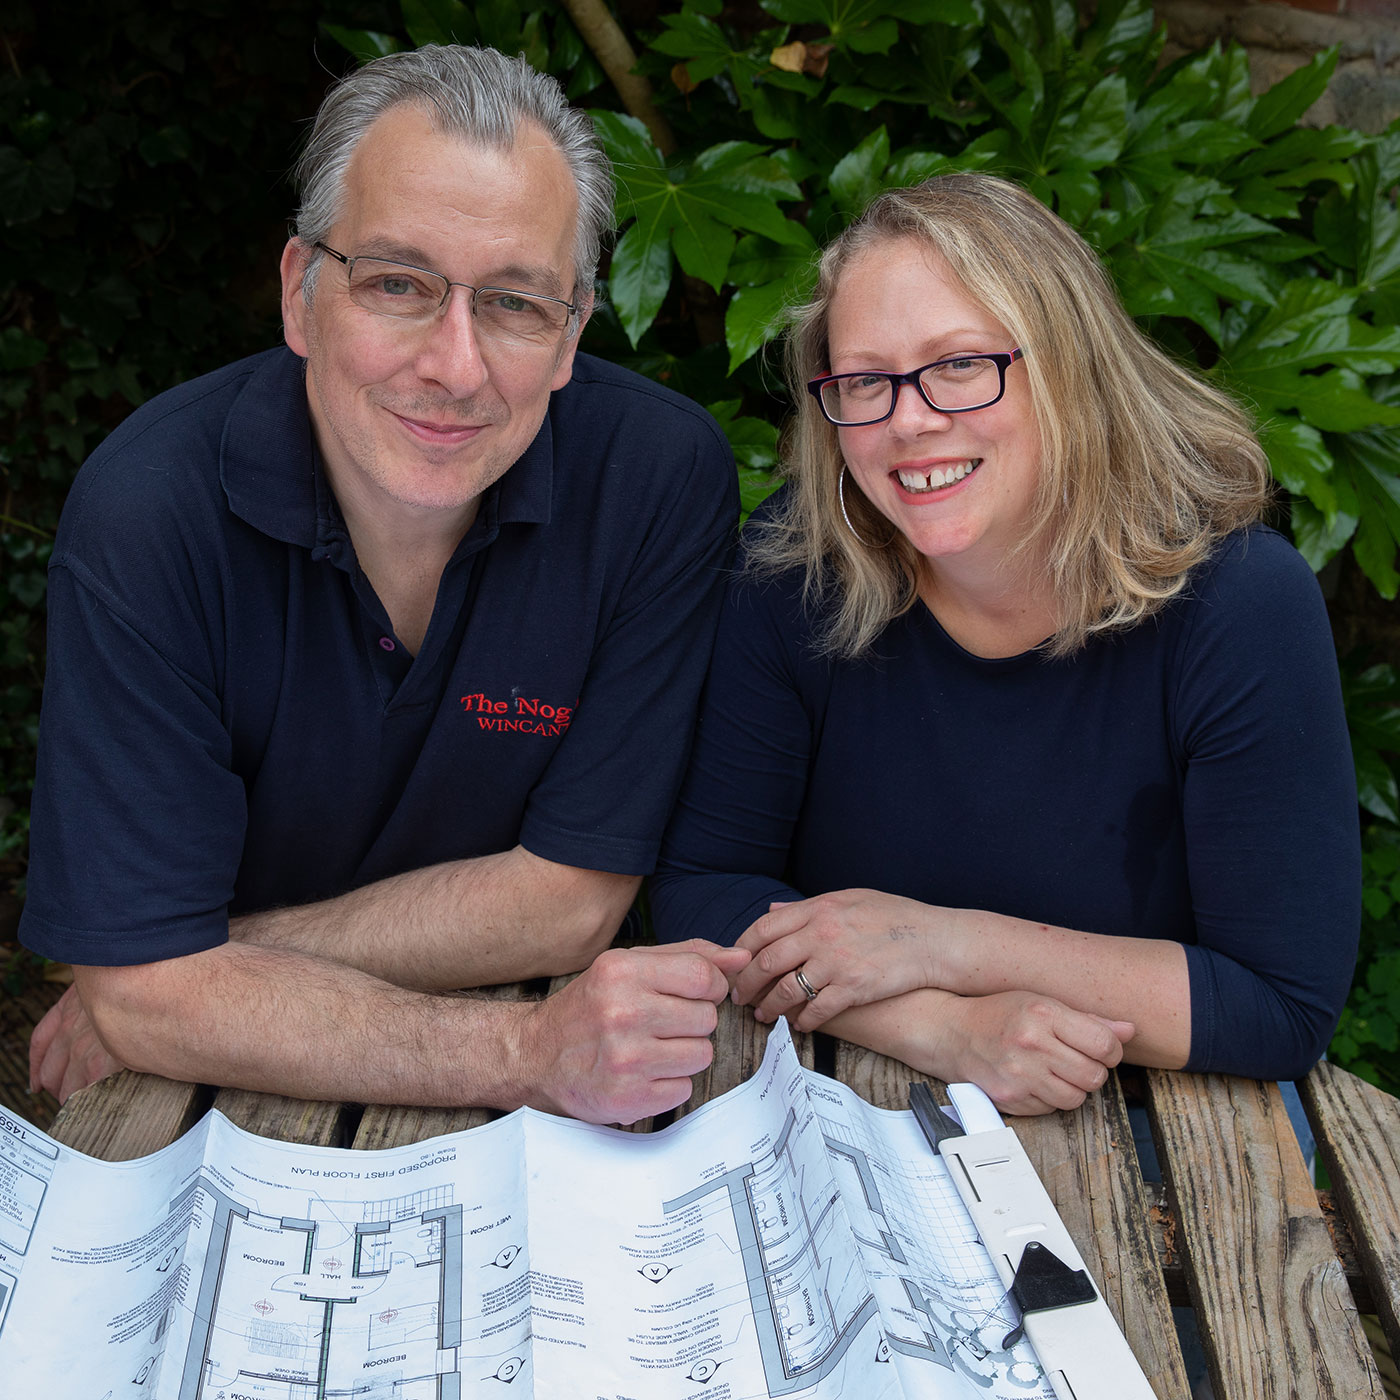 Will and Amy, owners of The Nog Inn in Wincanton